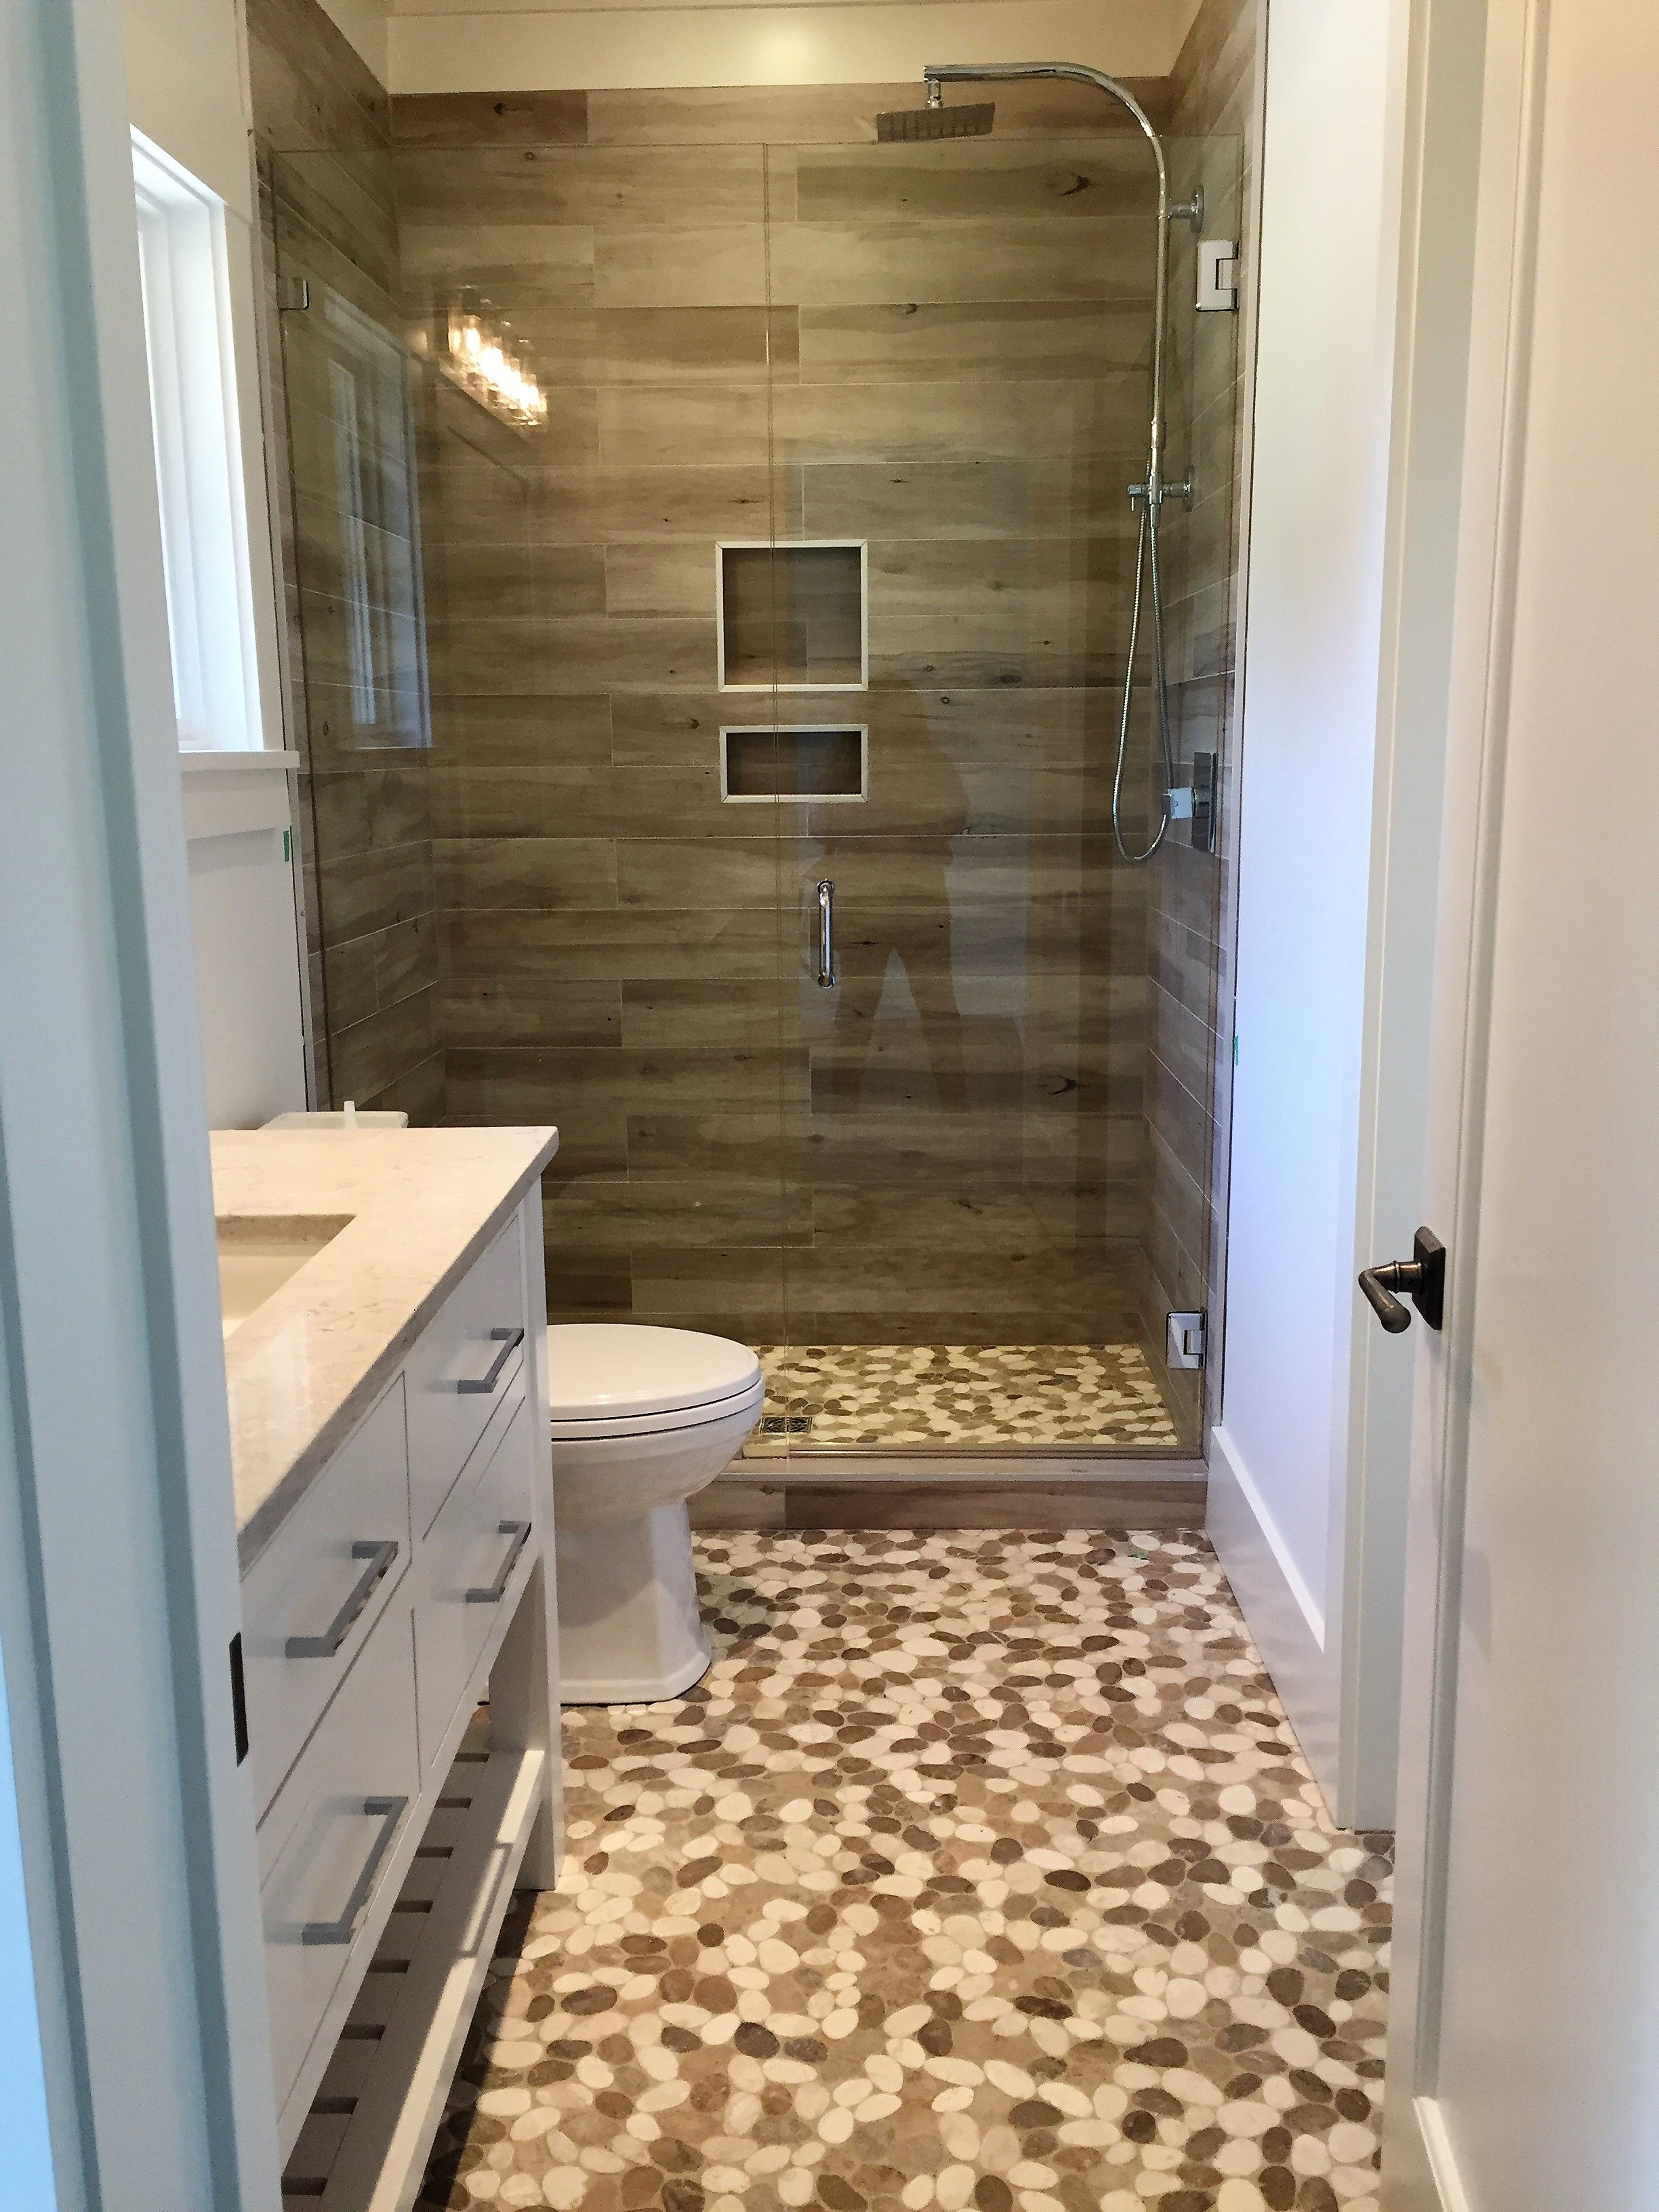 Pebbles On Floor And Wood Look Porcelain Plank Tile On Shower Walls Shower Wall Shower Tile Wood Plank Tile